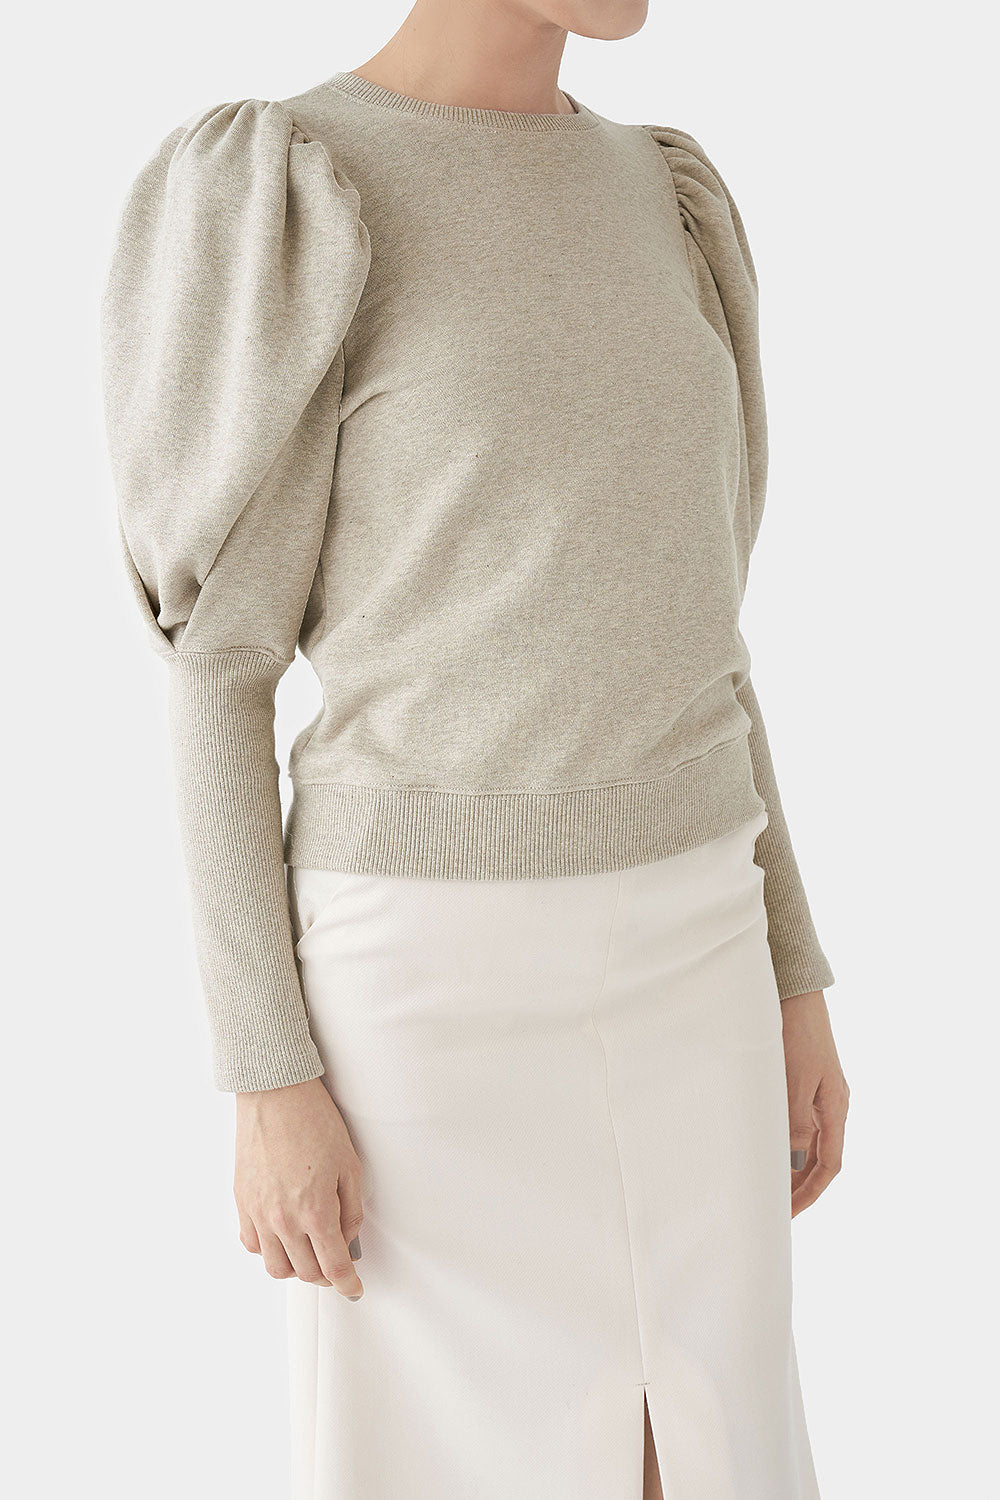 OATMEAL BO PUFF SLEEVE TOP